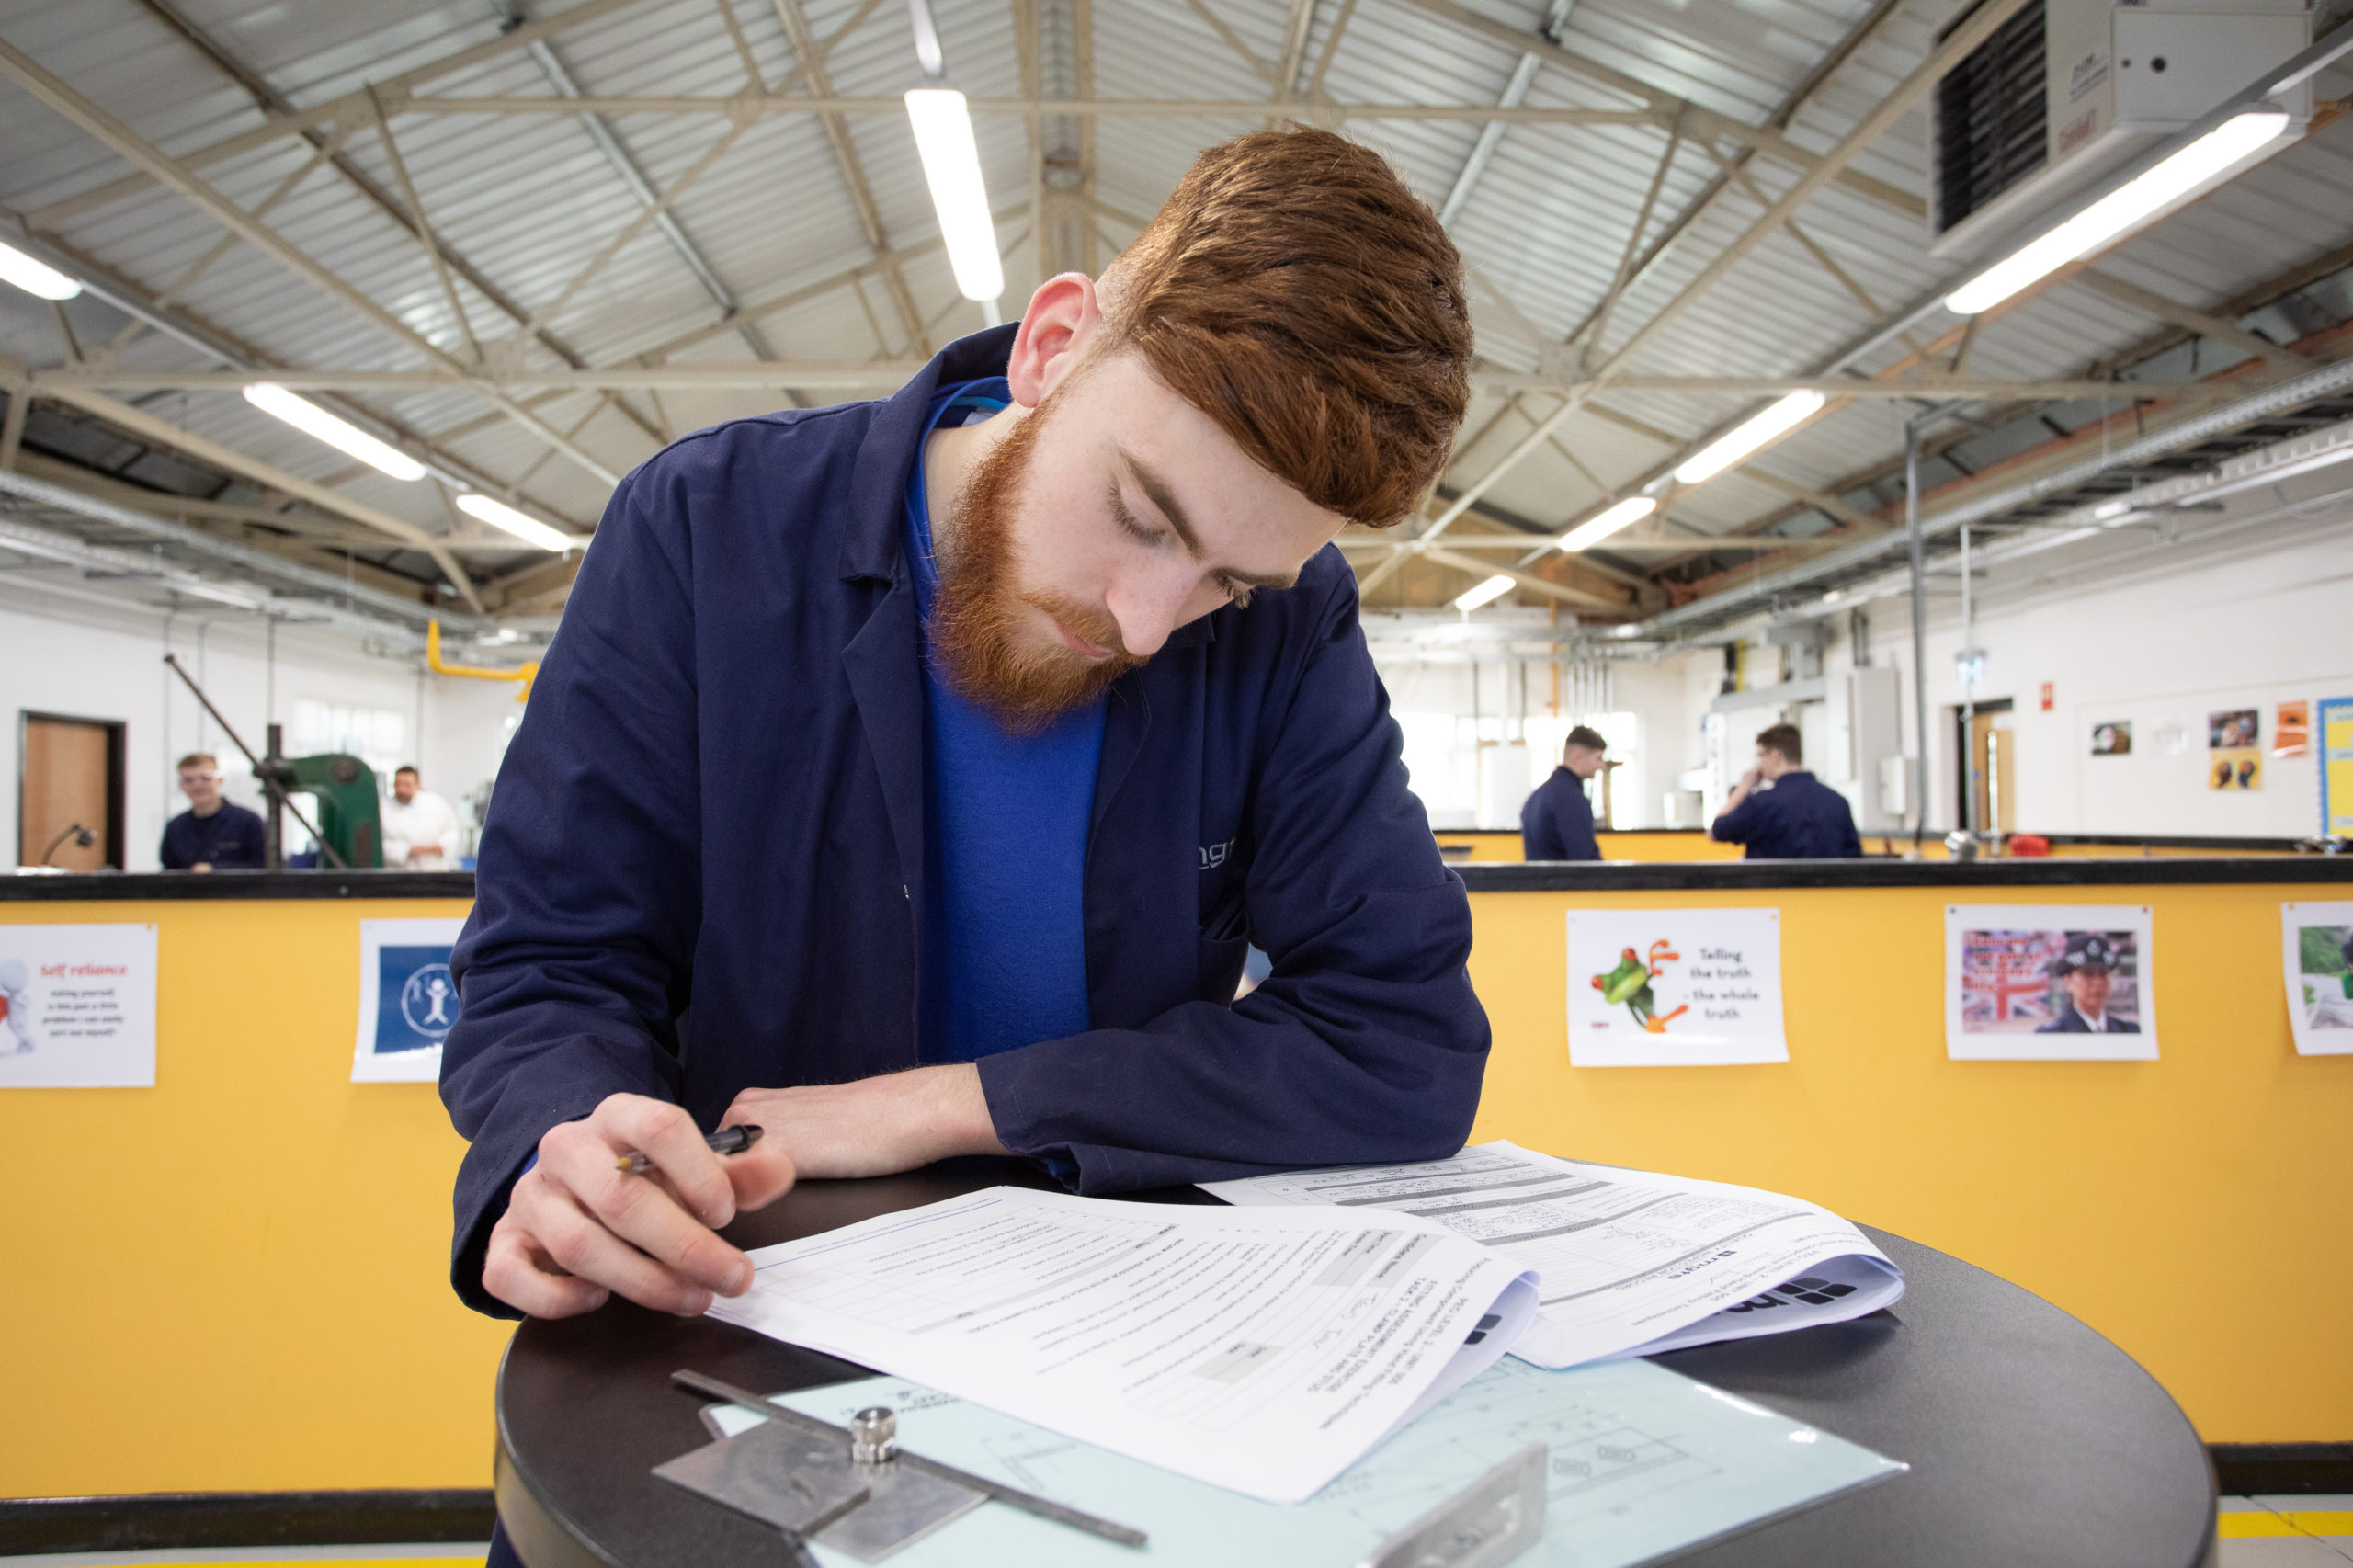 Product Design & Development apprentice working on coursework